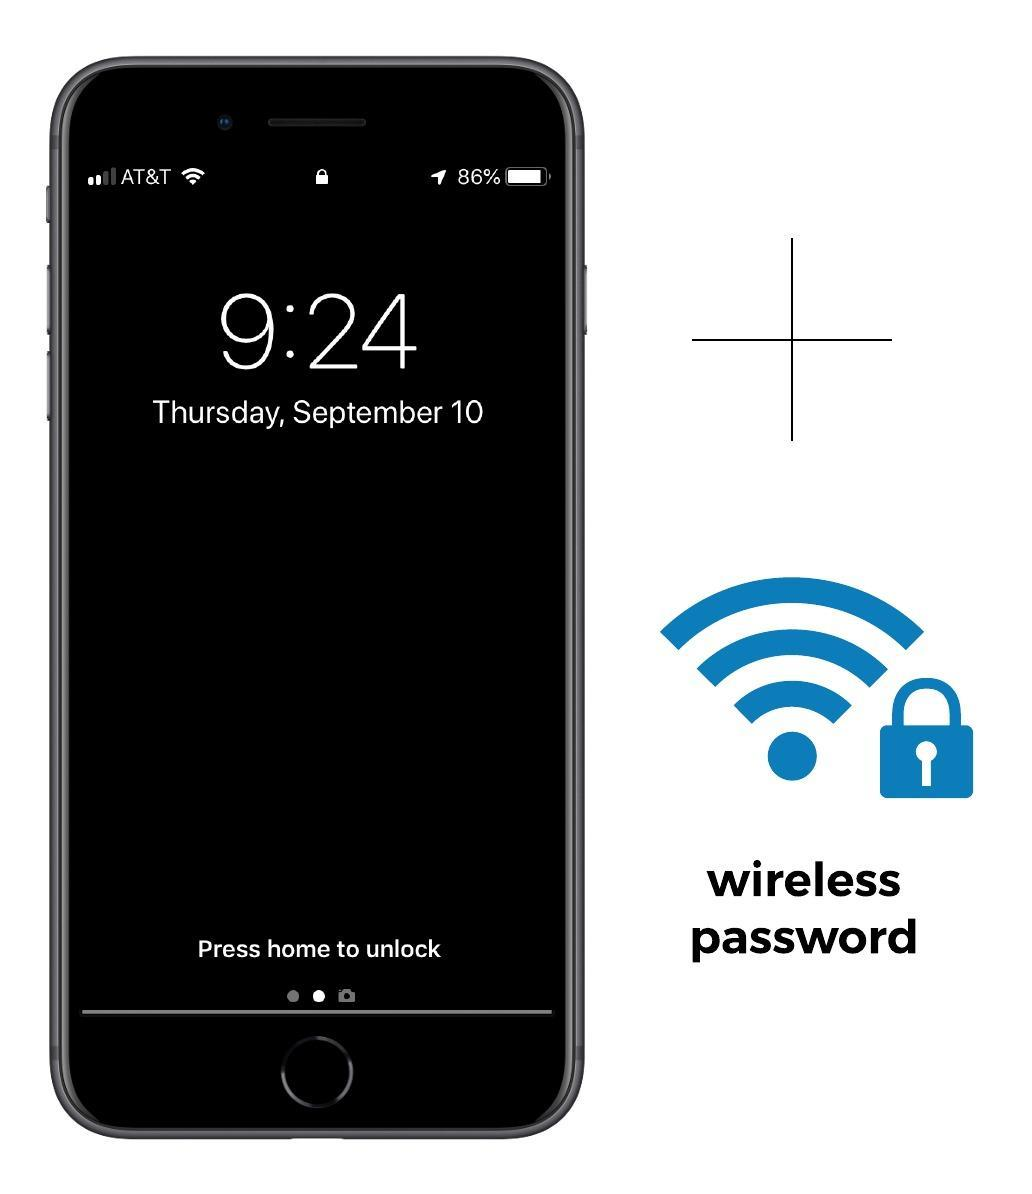 iphone and wireless icon